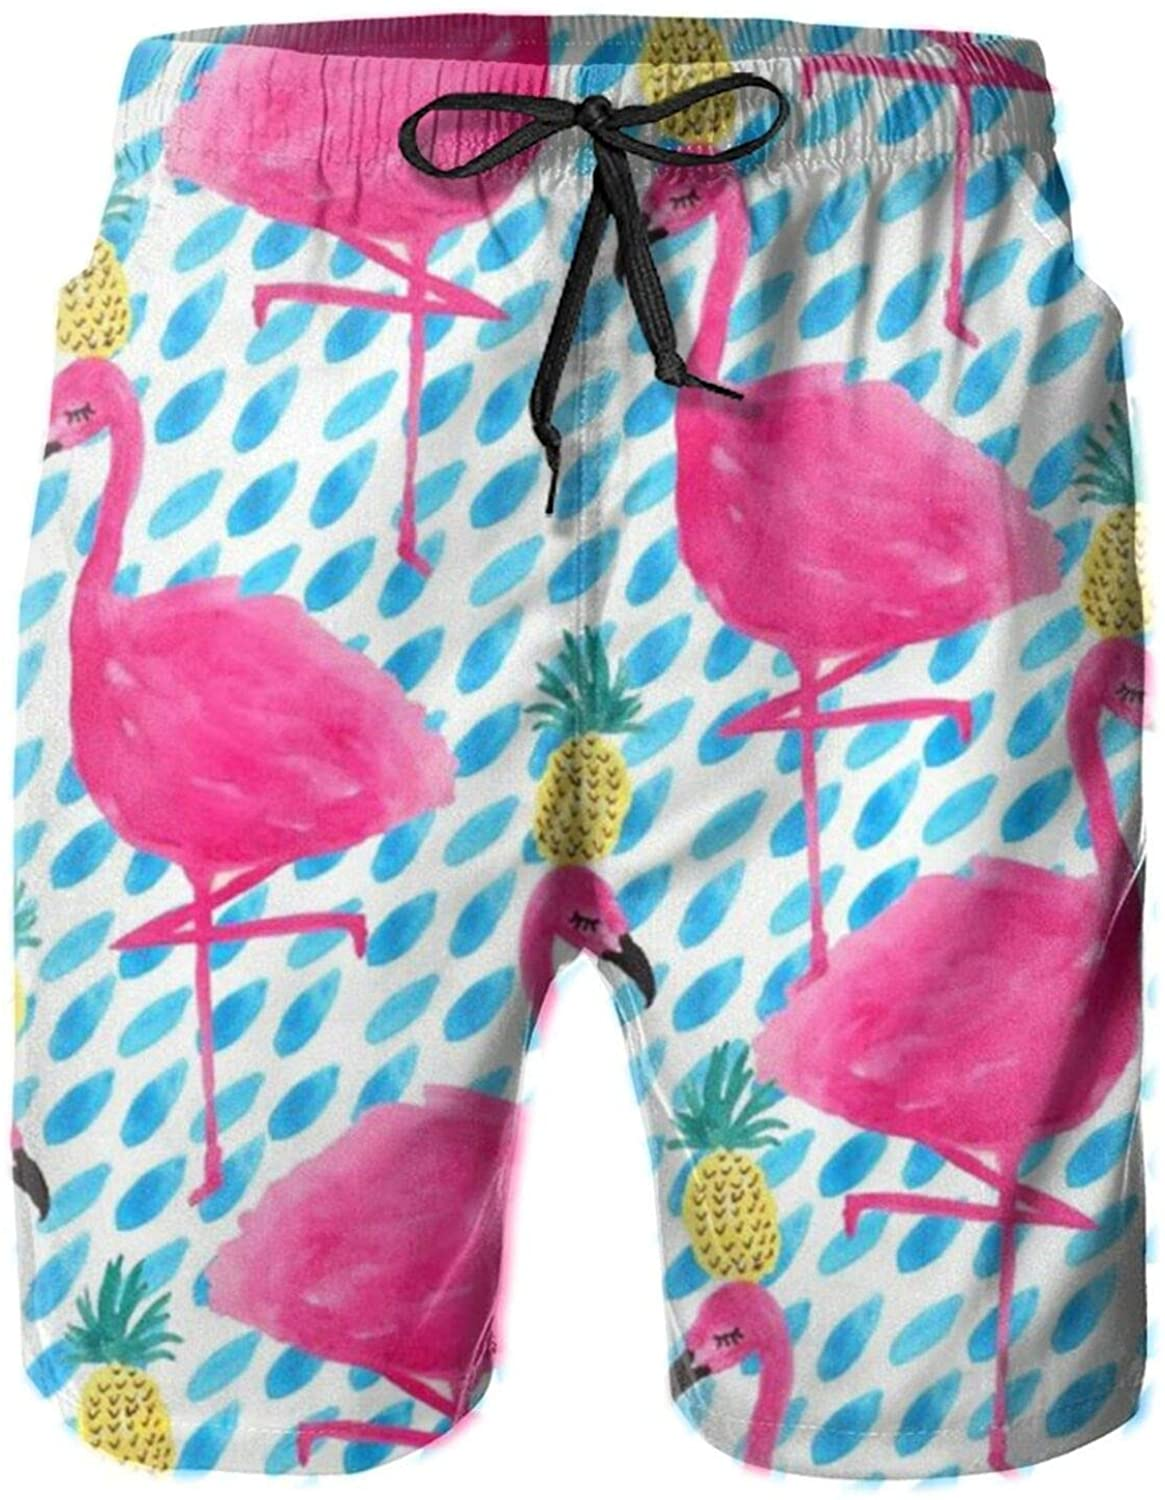 Flamingos and Pineapples Men's Shorts,Men's Swim Trunks Swimwear Shorts with Mesh Lining and Pockets White